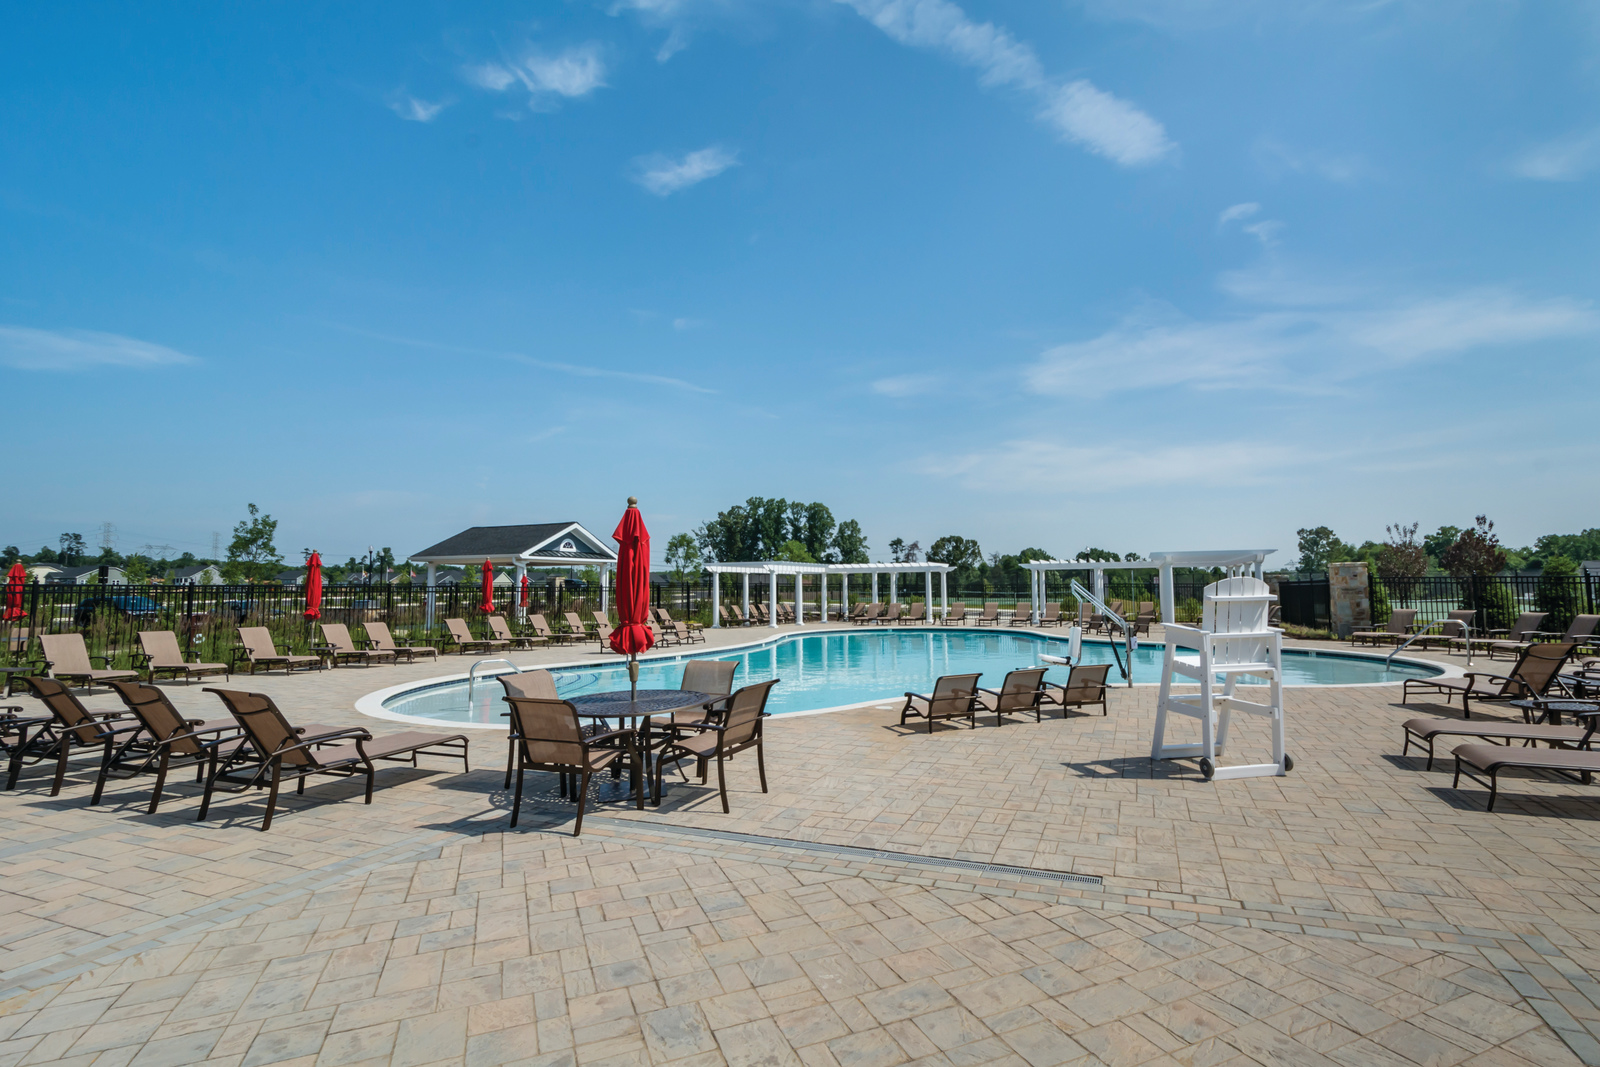 The outdoor swimming pool at Two Rivers will be the perfect destination for your visiting family.